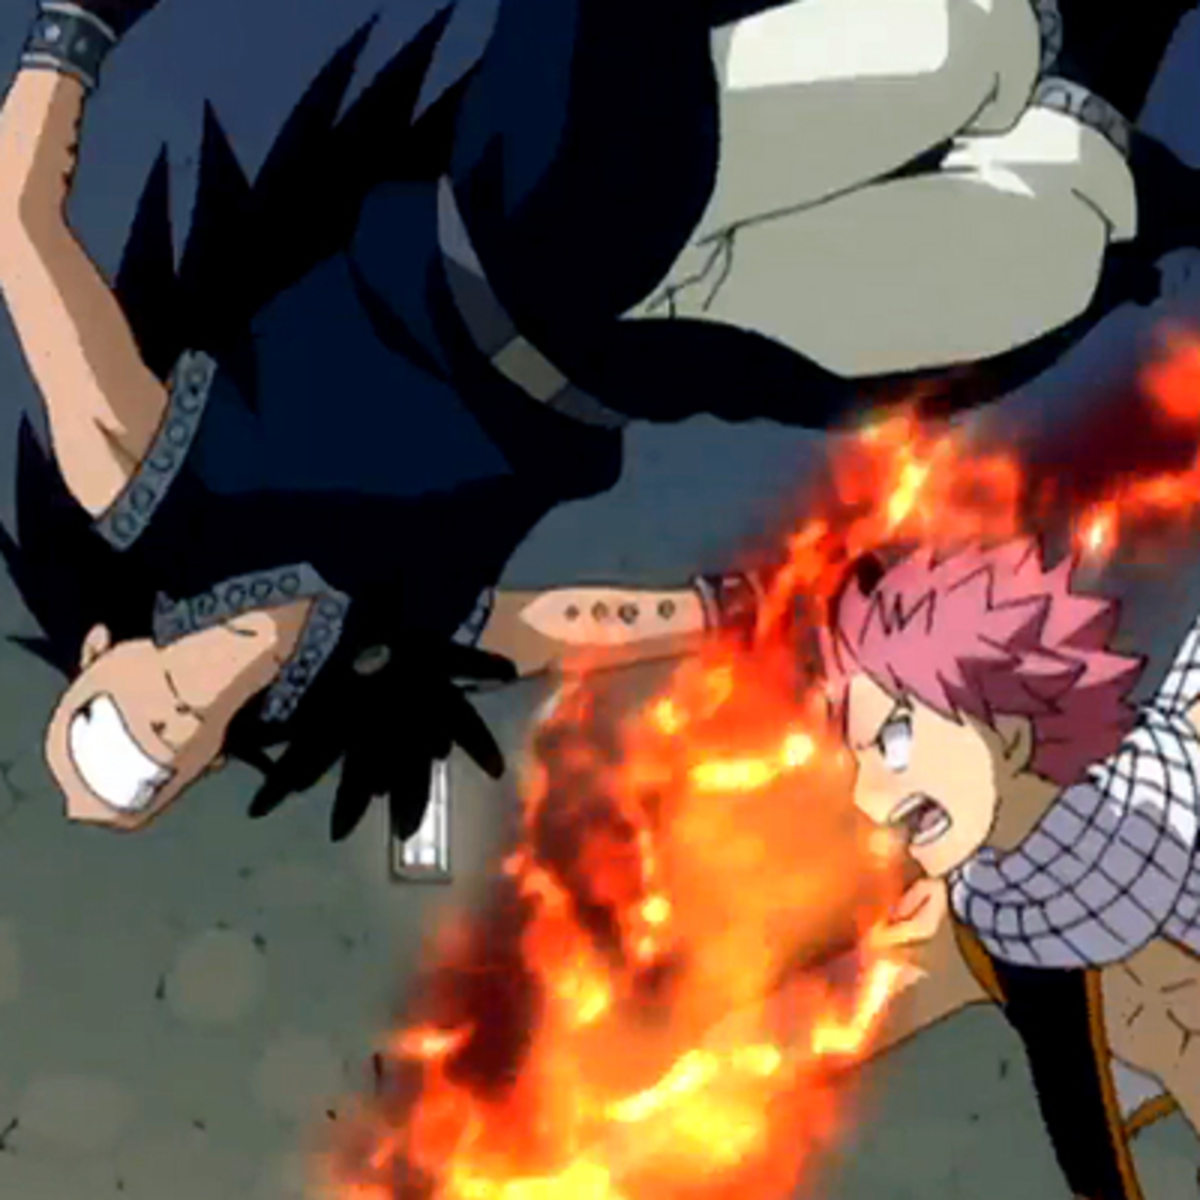 Natsu connecting a fist to Gajeel